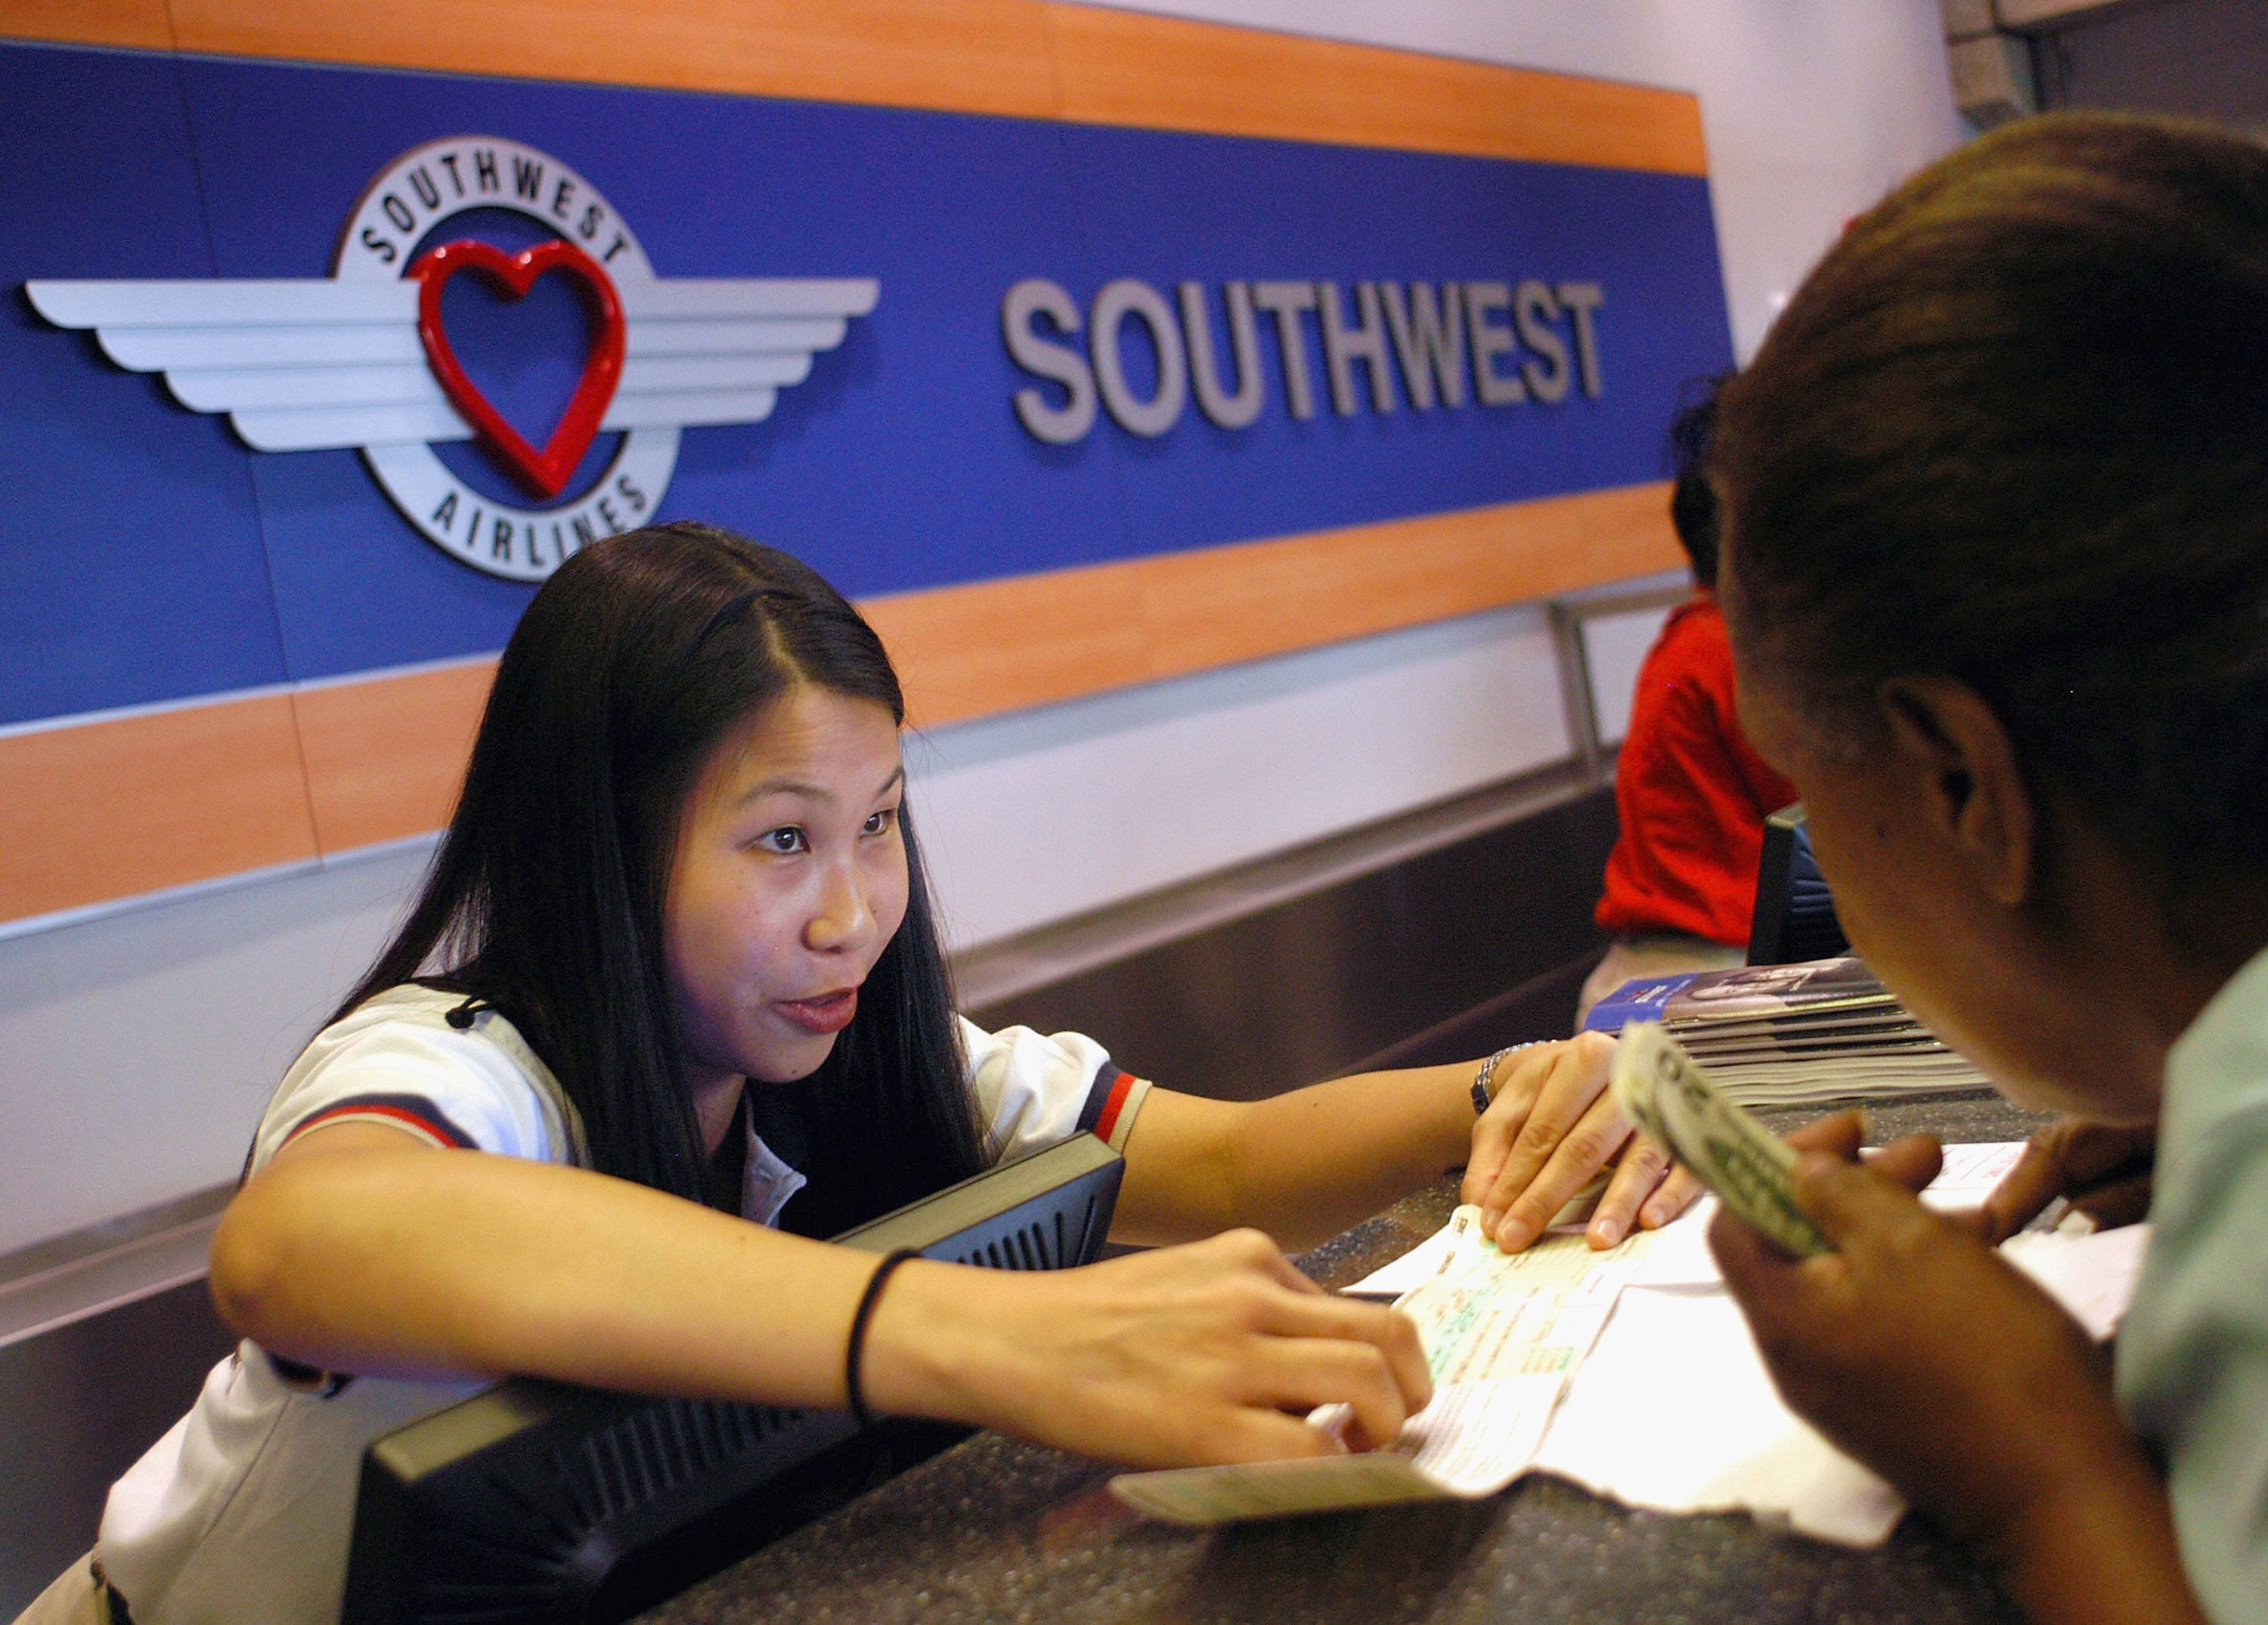 Southwest Airlines employee Agnes Chu of Oakland, California assists passenger Lois Ryals of Philadelphia, Pennsylvania at Philadelphia International Airport